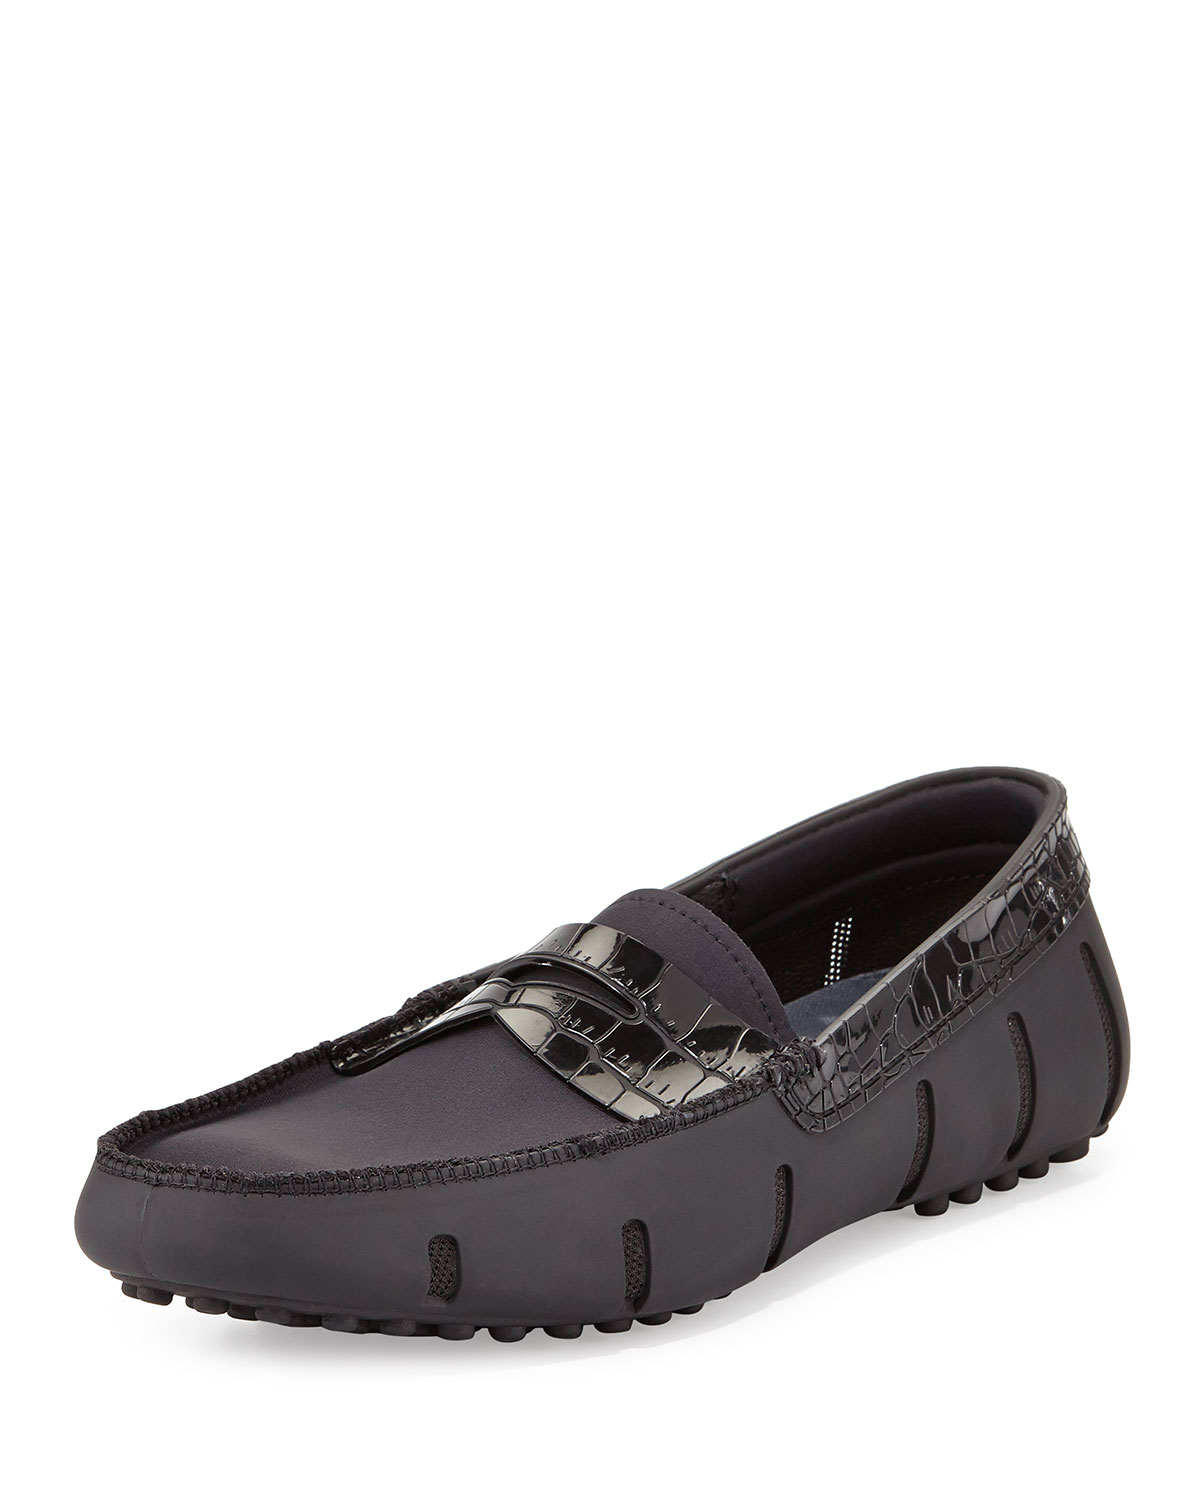 235c23af3ce Swims Rubber Penny Loafer with Faux-Croc Trim